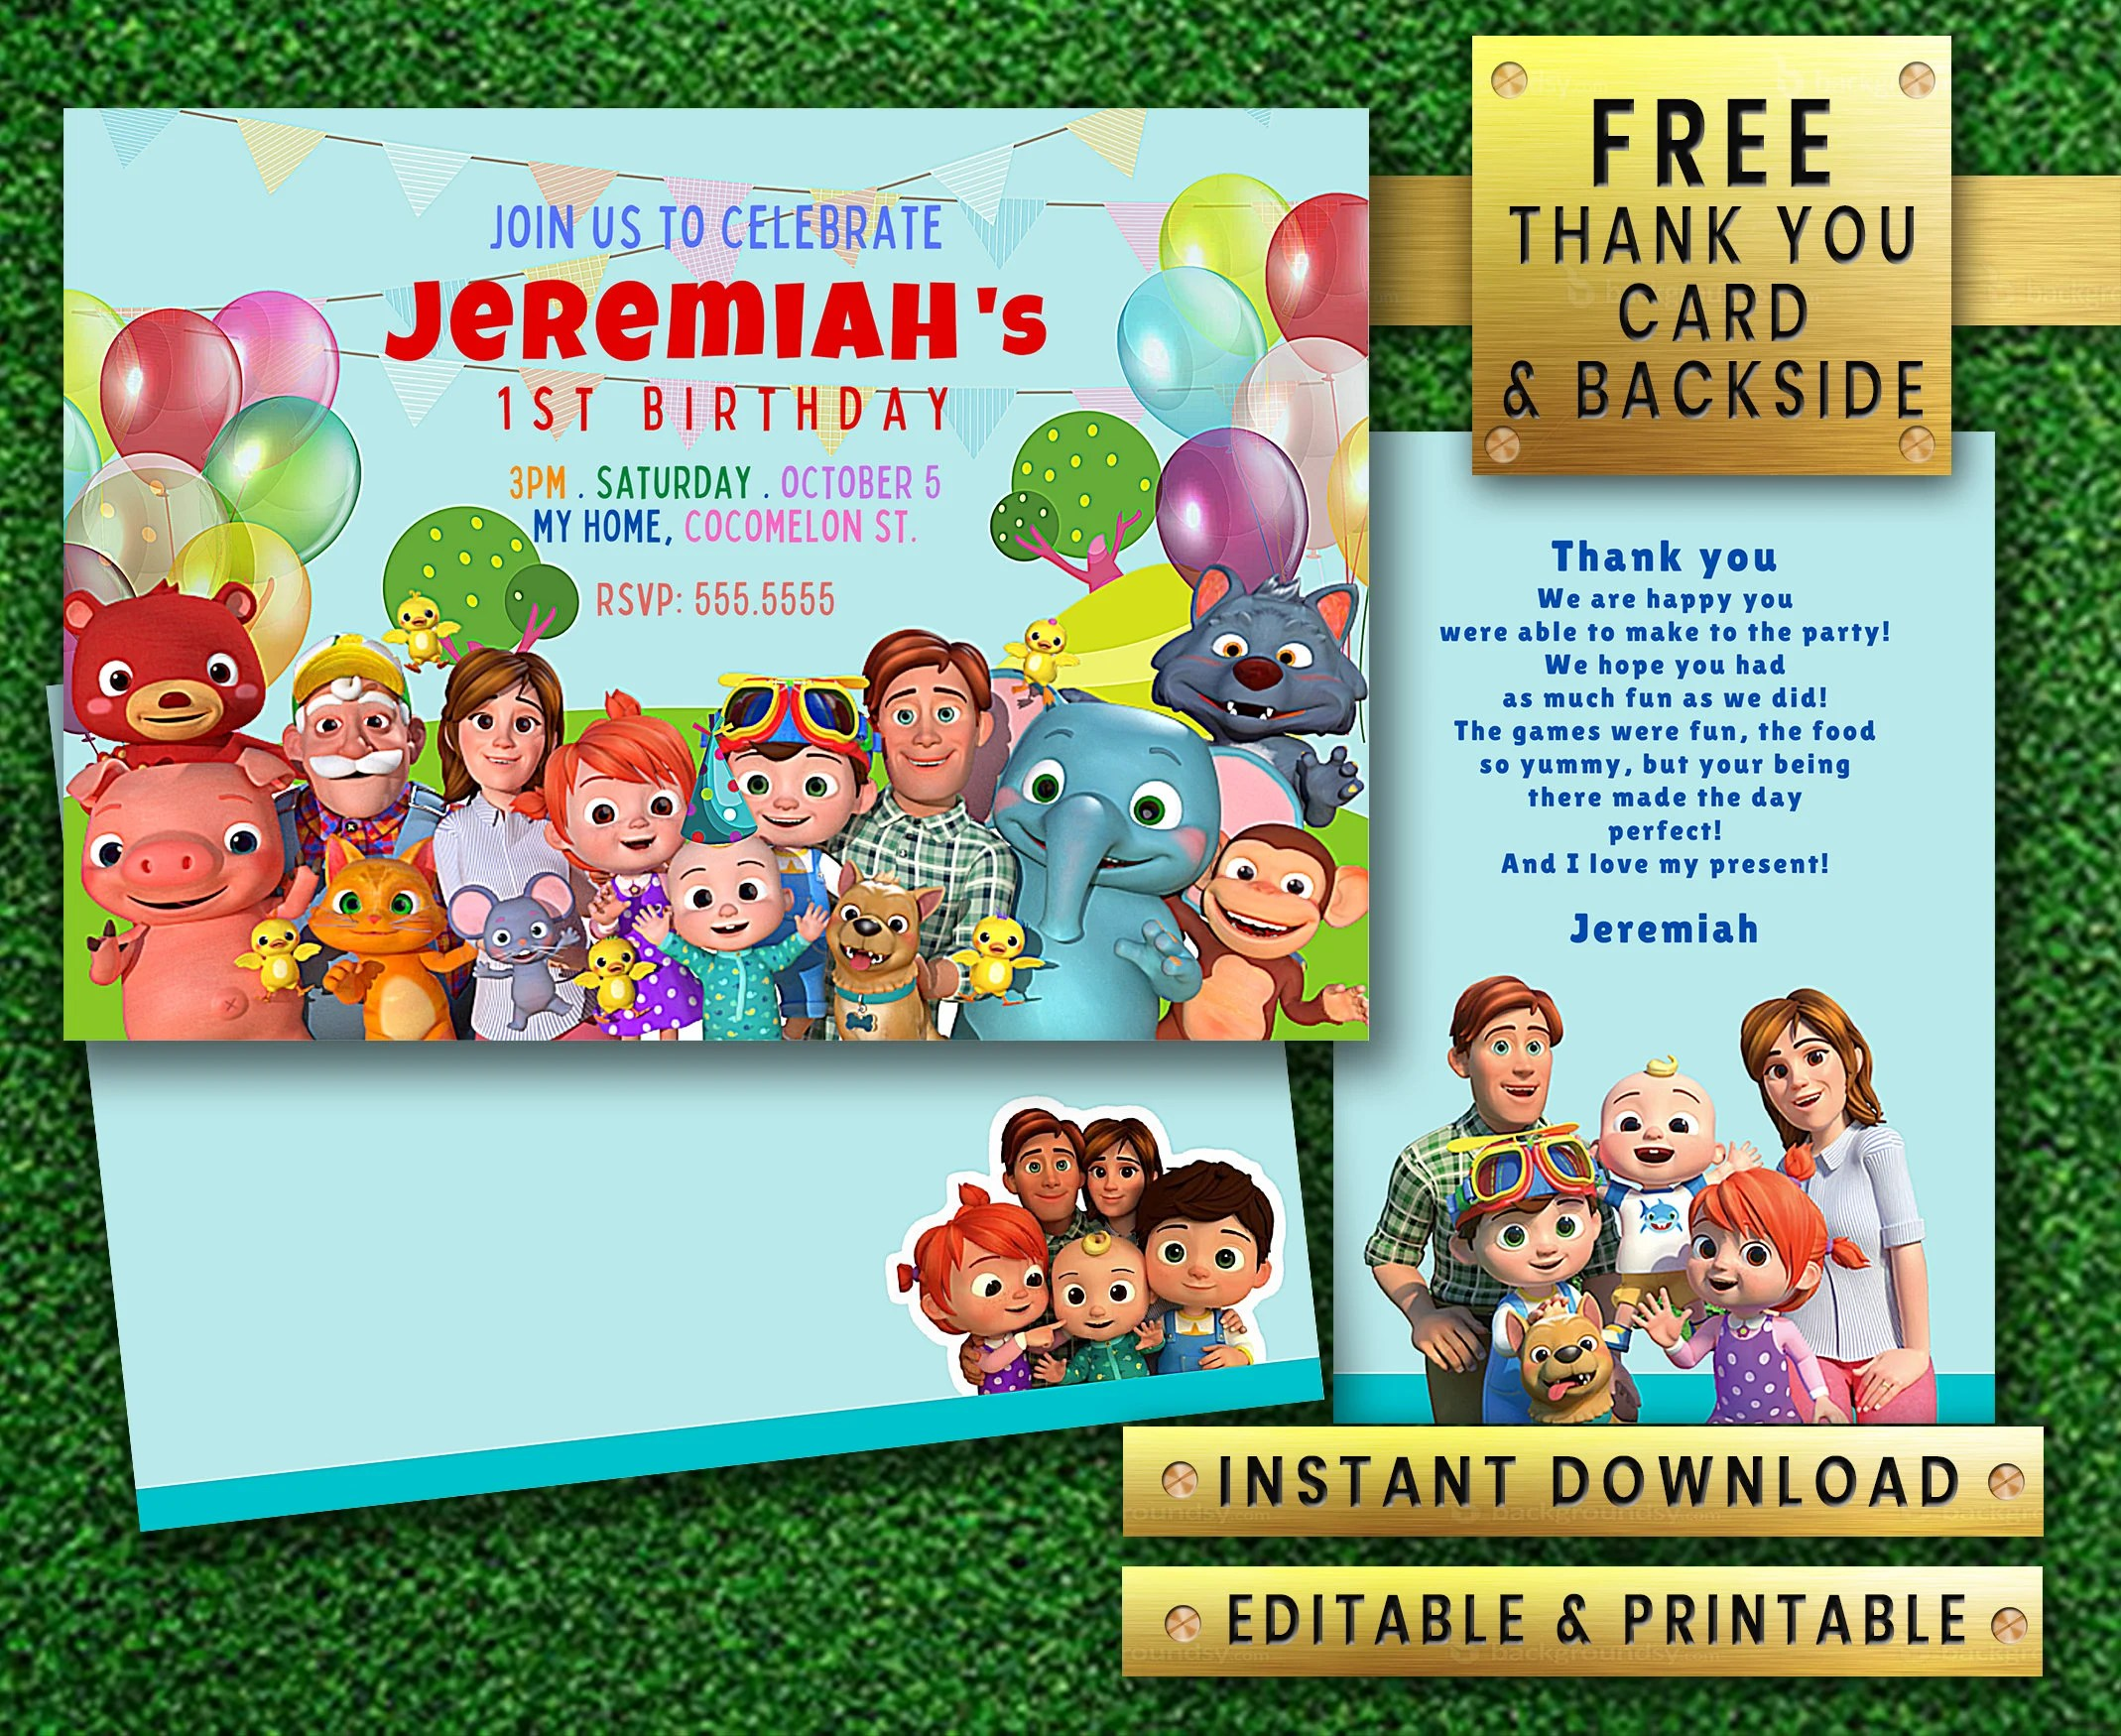 cocomelon instant download editable printable girl boy birthday party invitation free thank you card back side